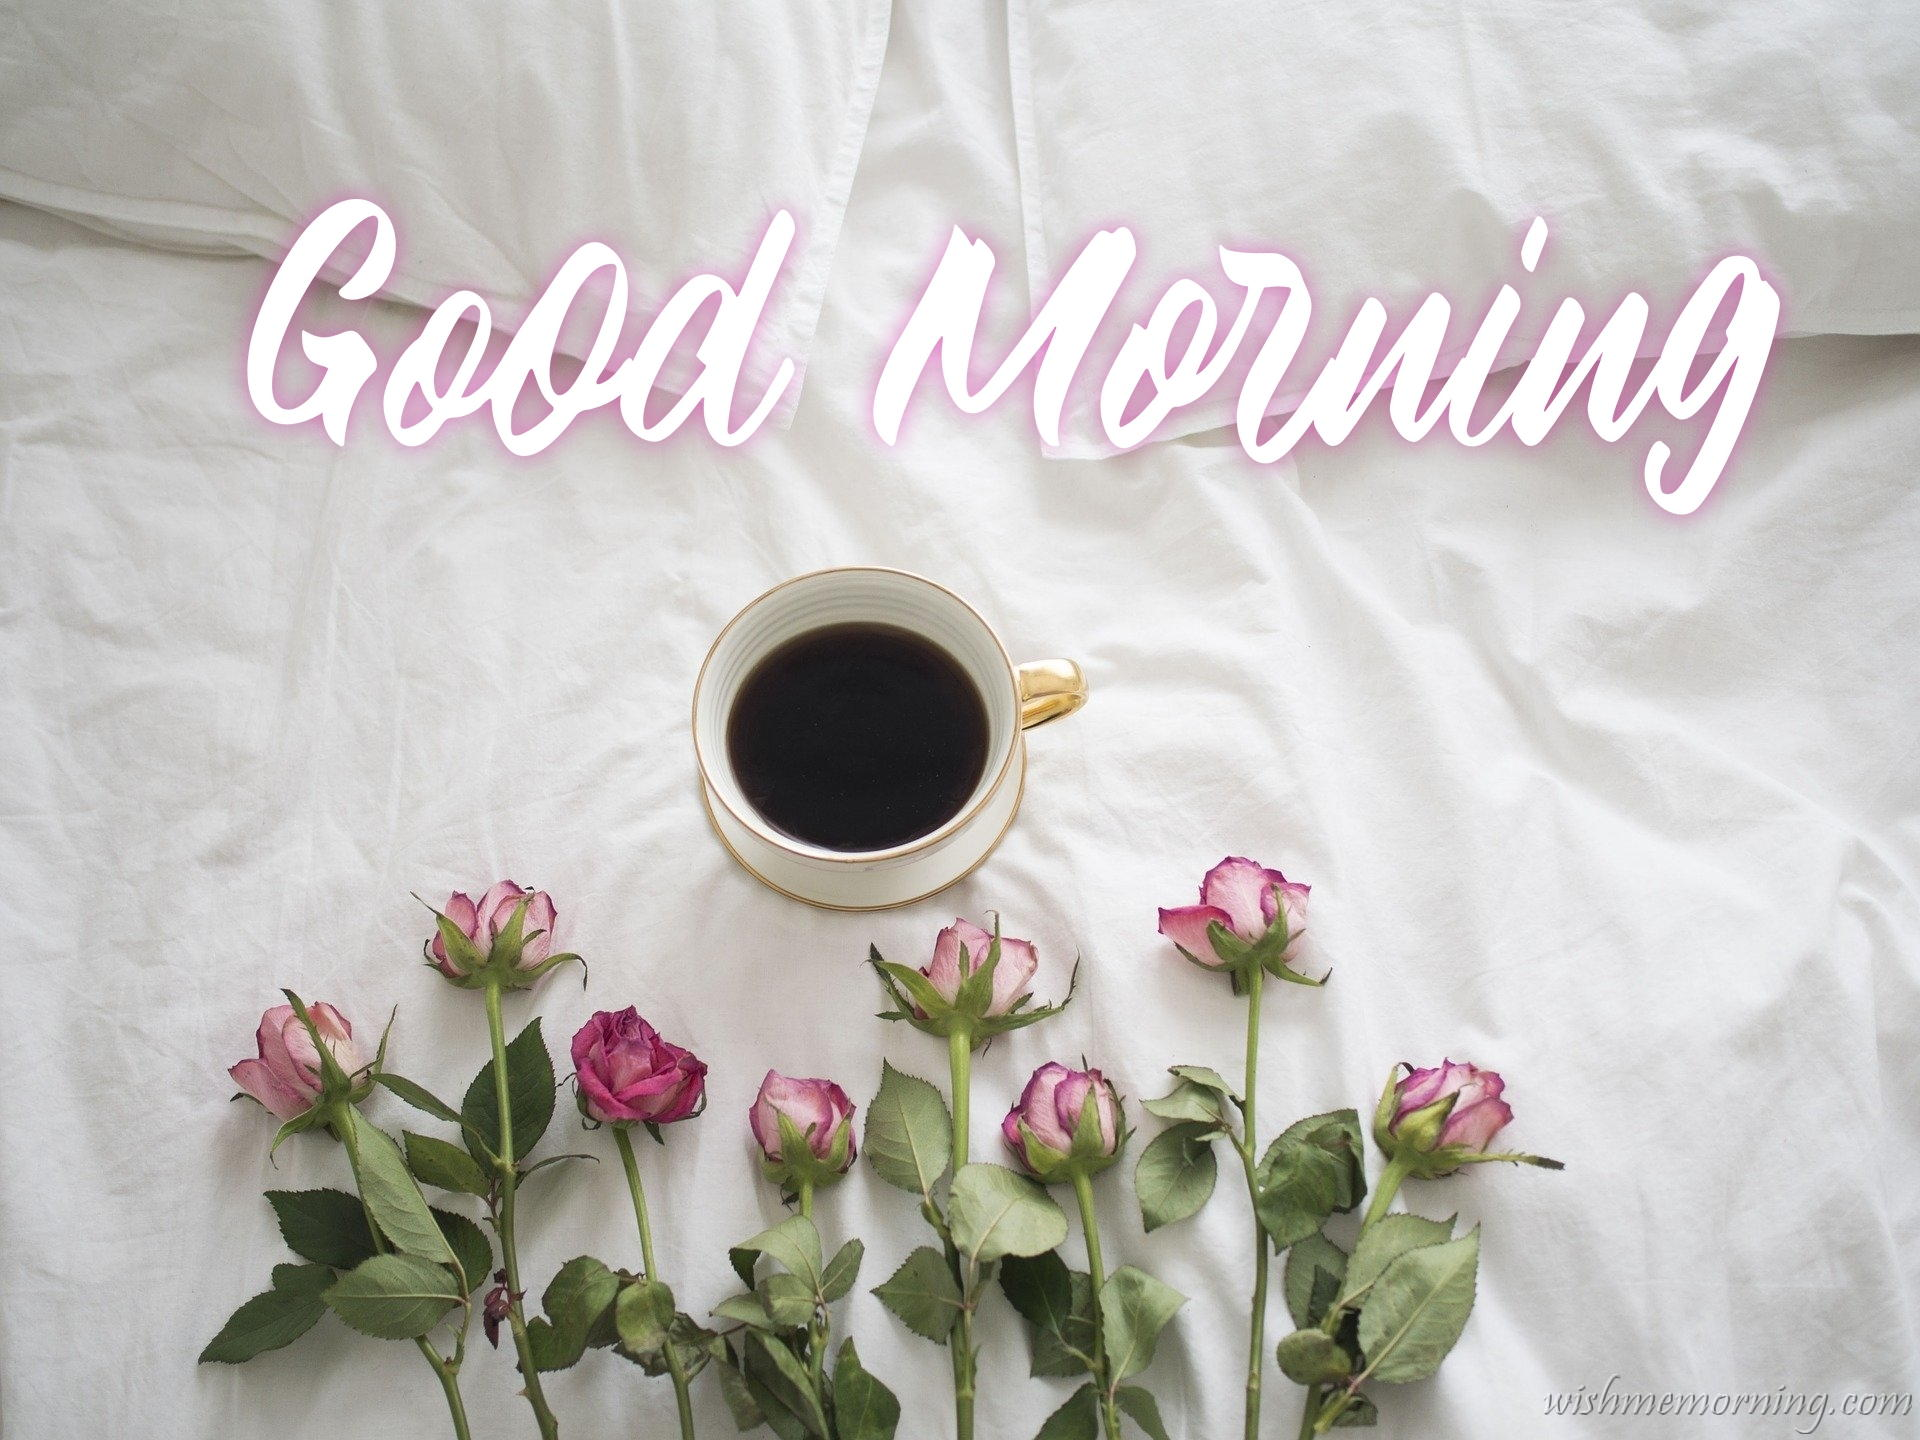 Beautiful White Bed Sheets Flower with Coffee Cup Pillows Good Morning Wish